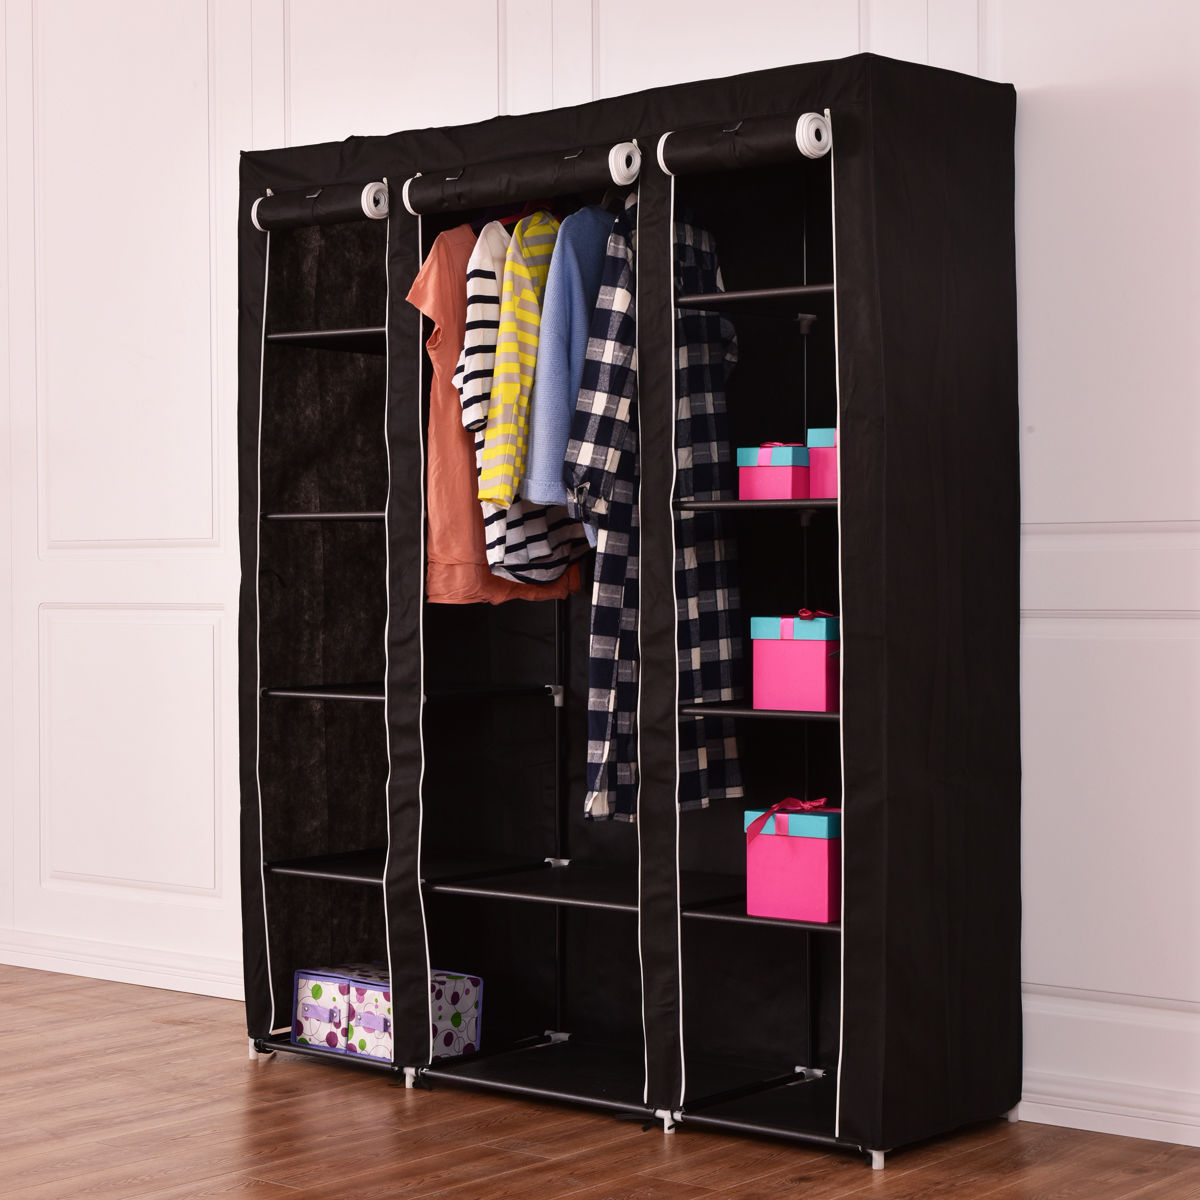 Costway 70'' Portable Closet Storage Organizer Clothes Wardrobe Shoe Rack W/Shelves Black